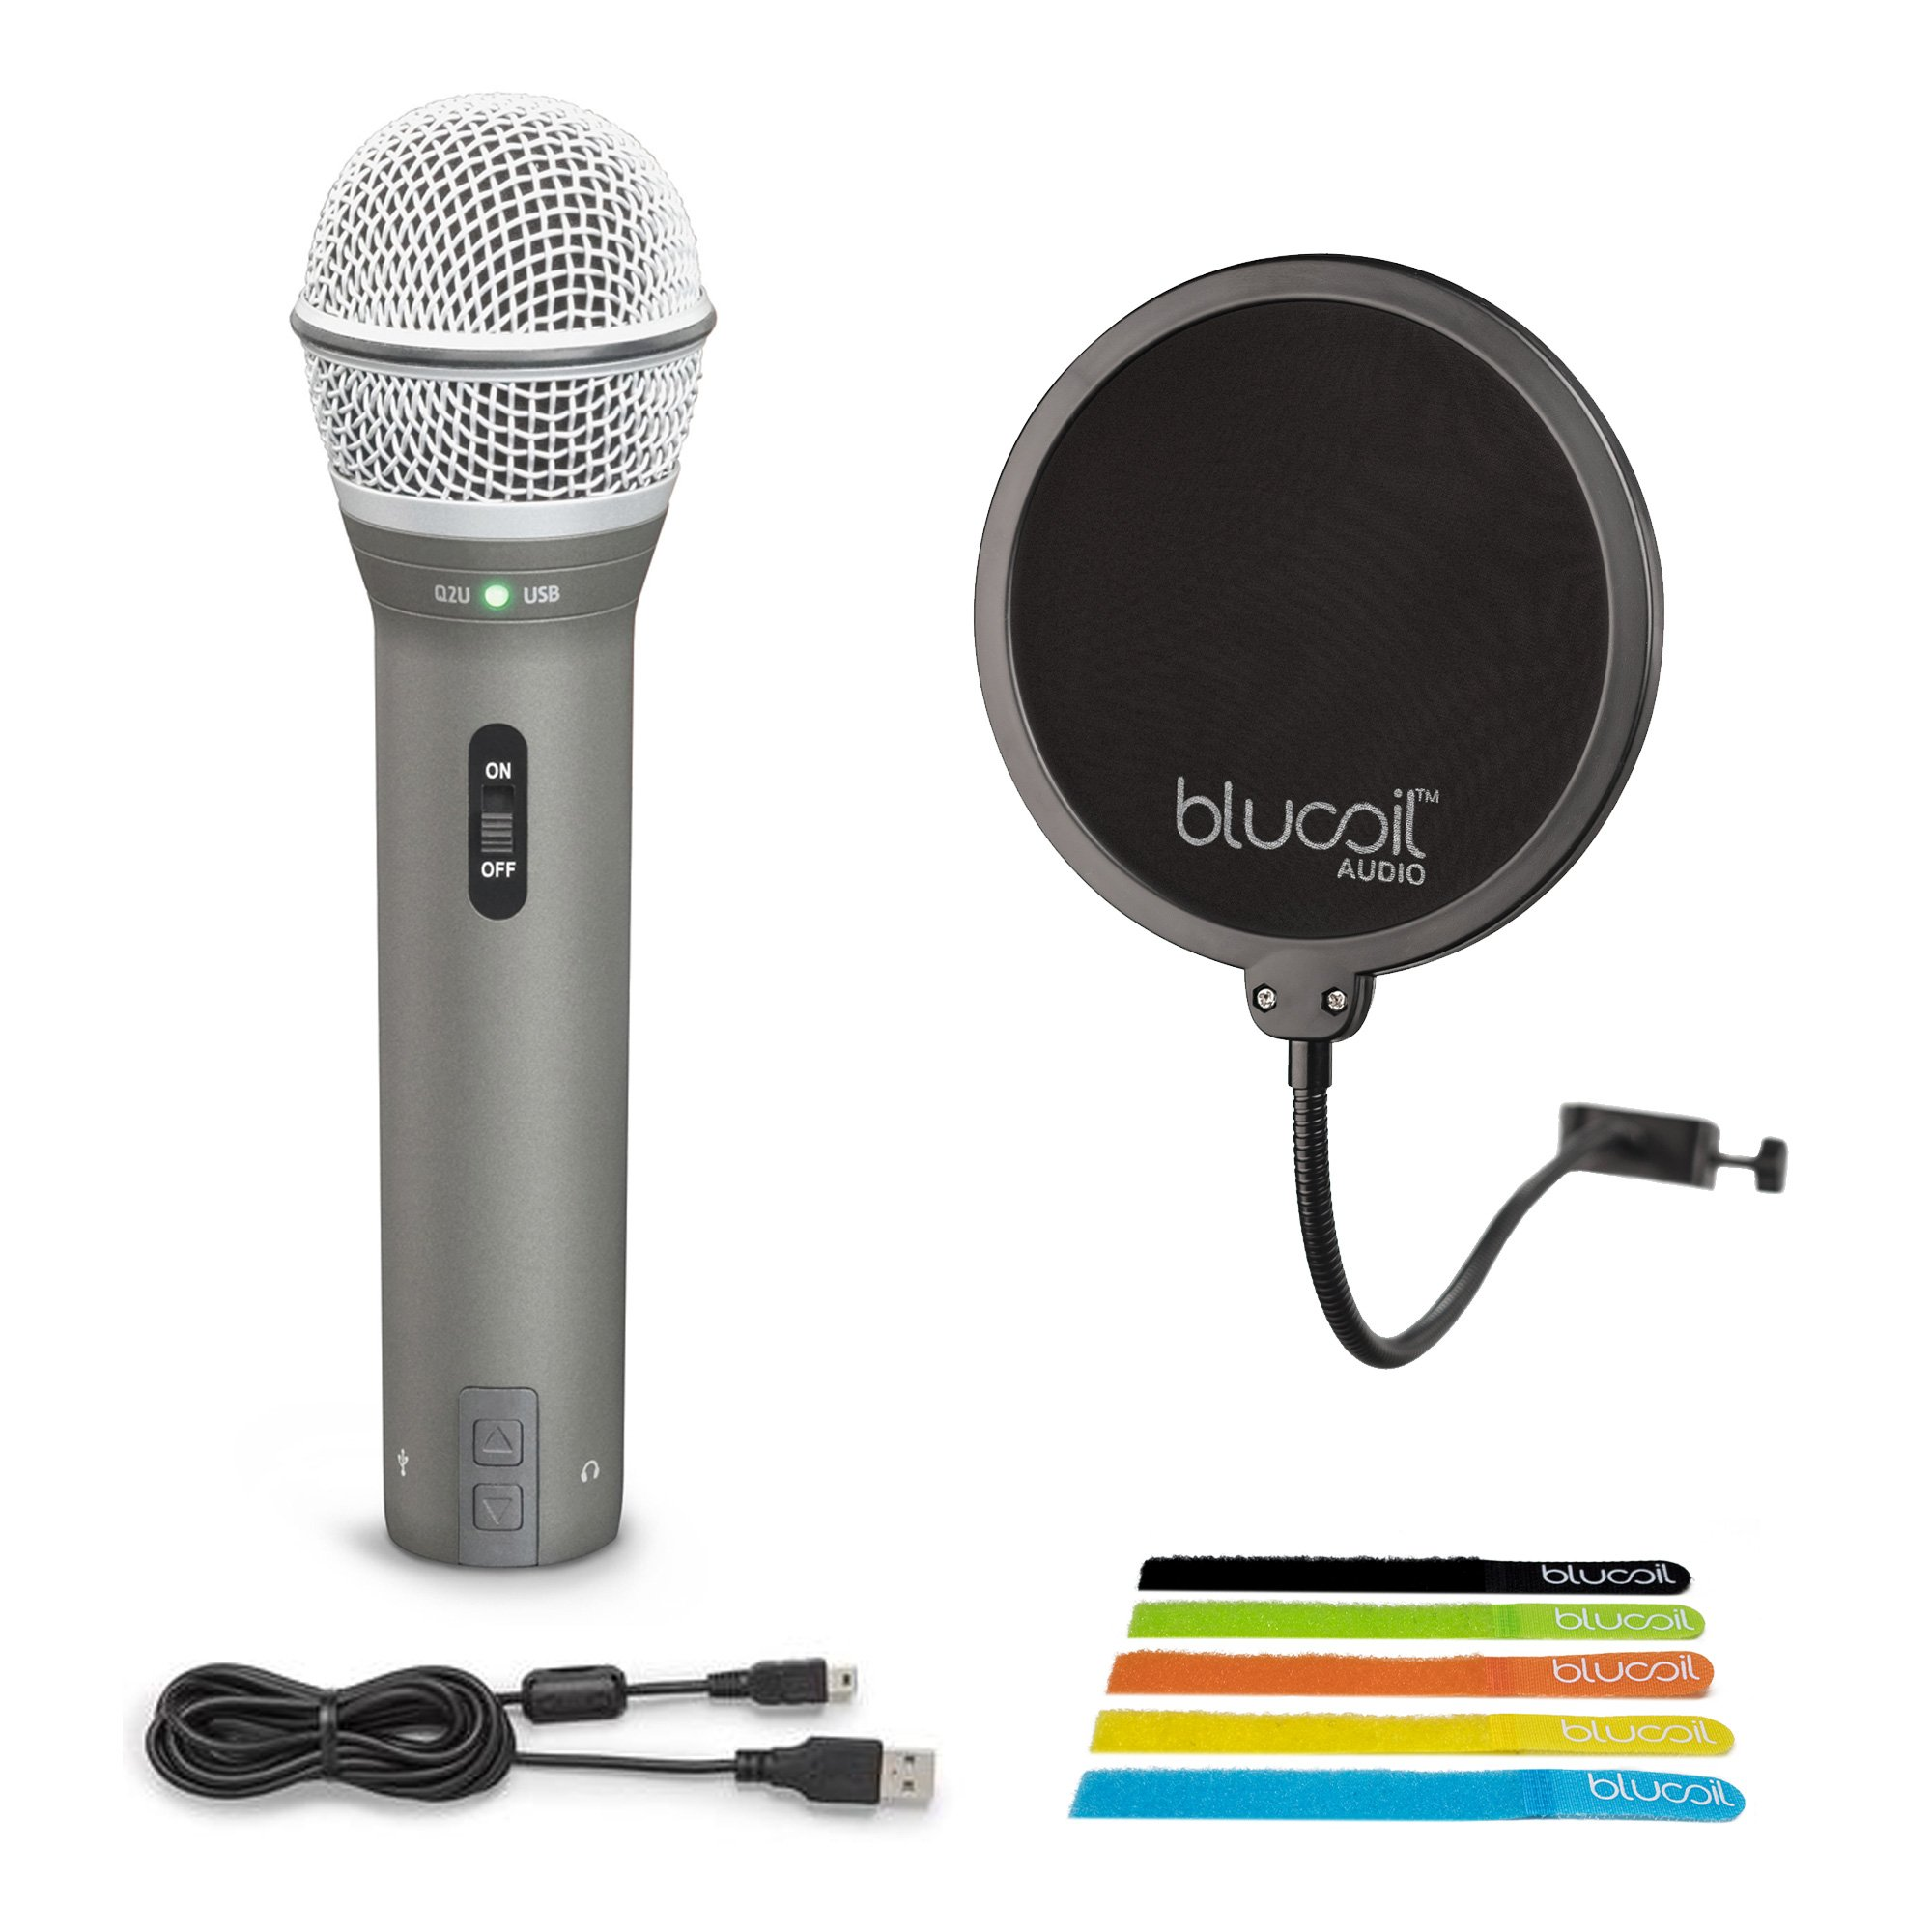 Samson Q2U Handheld Dynamic USB XLR Microphone for Windows, Mac, iPad -INCLUDES- Blucoil Pop Filter AND 5-Pack of Cable Ties